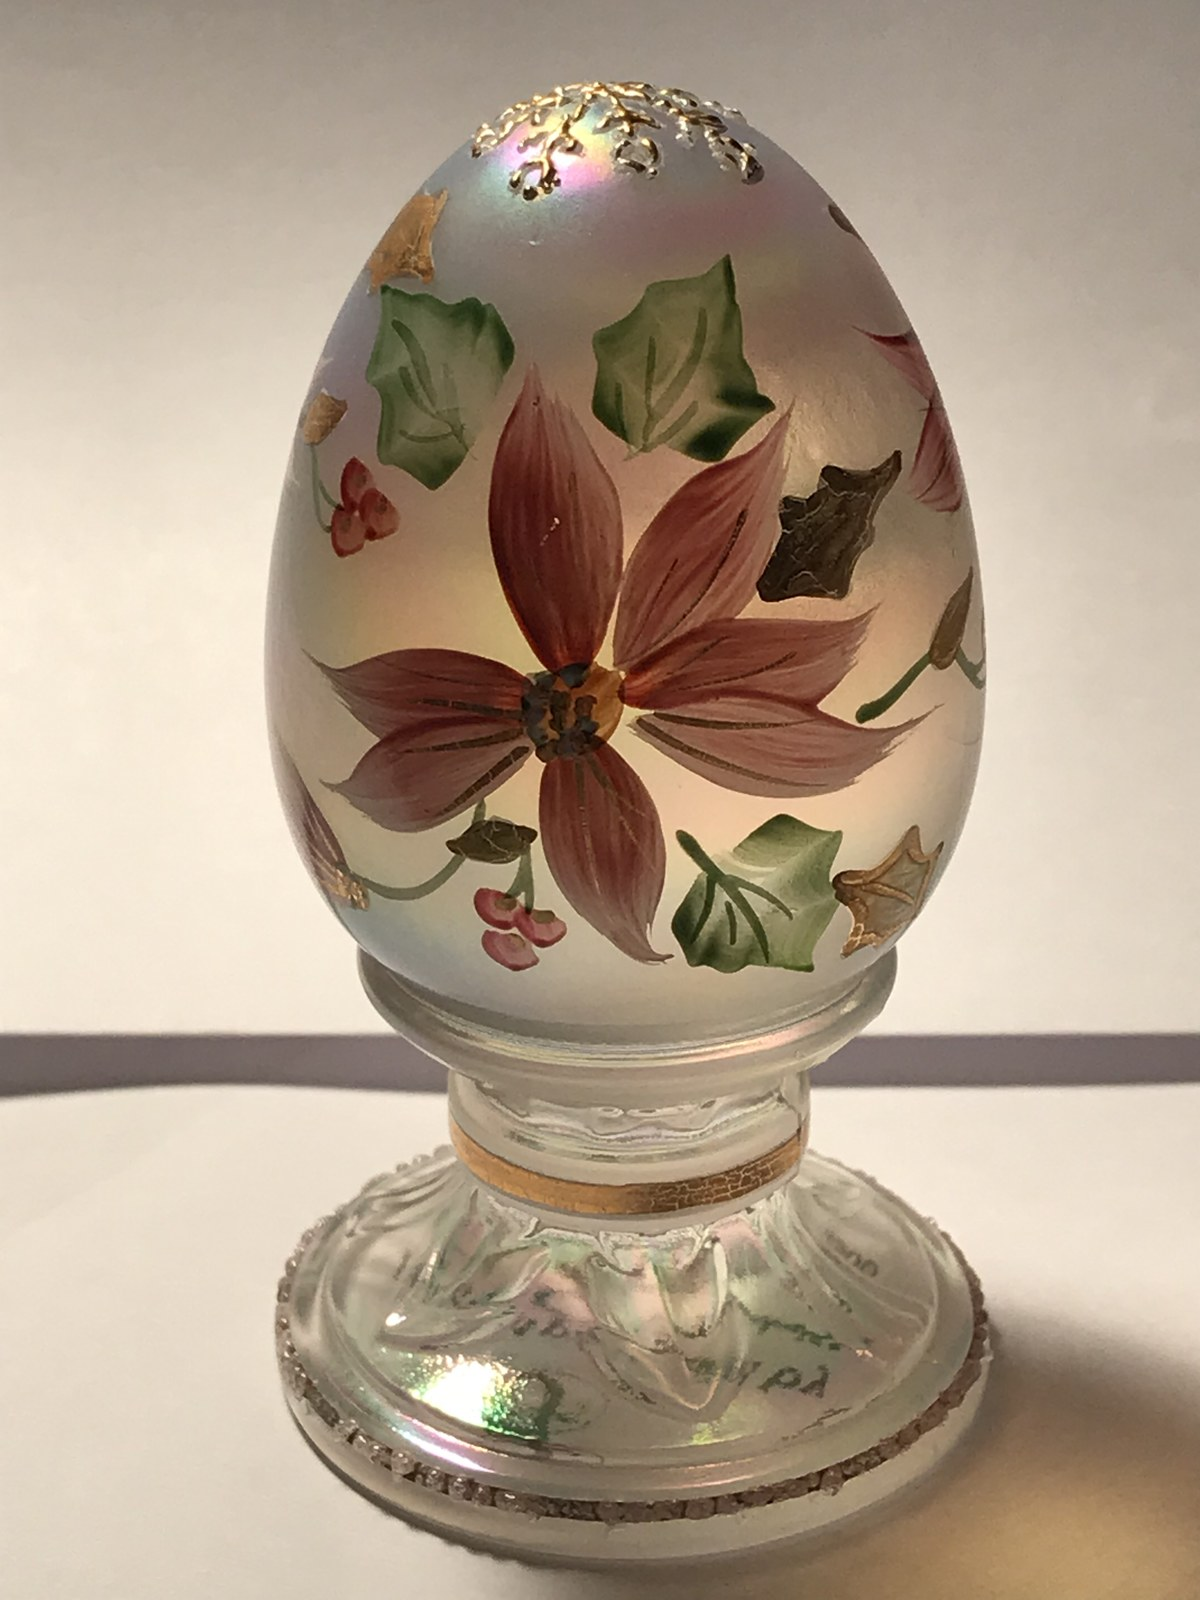 Fenton Glass Limited Edition Egg Opalescent with Christmas Poinsettias